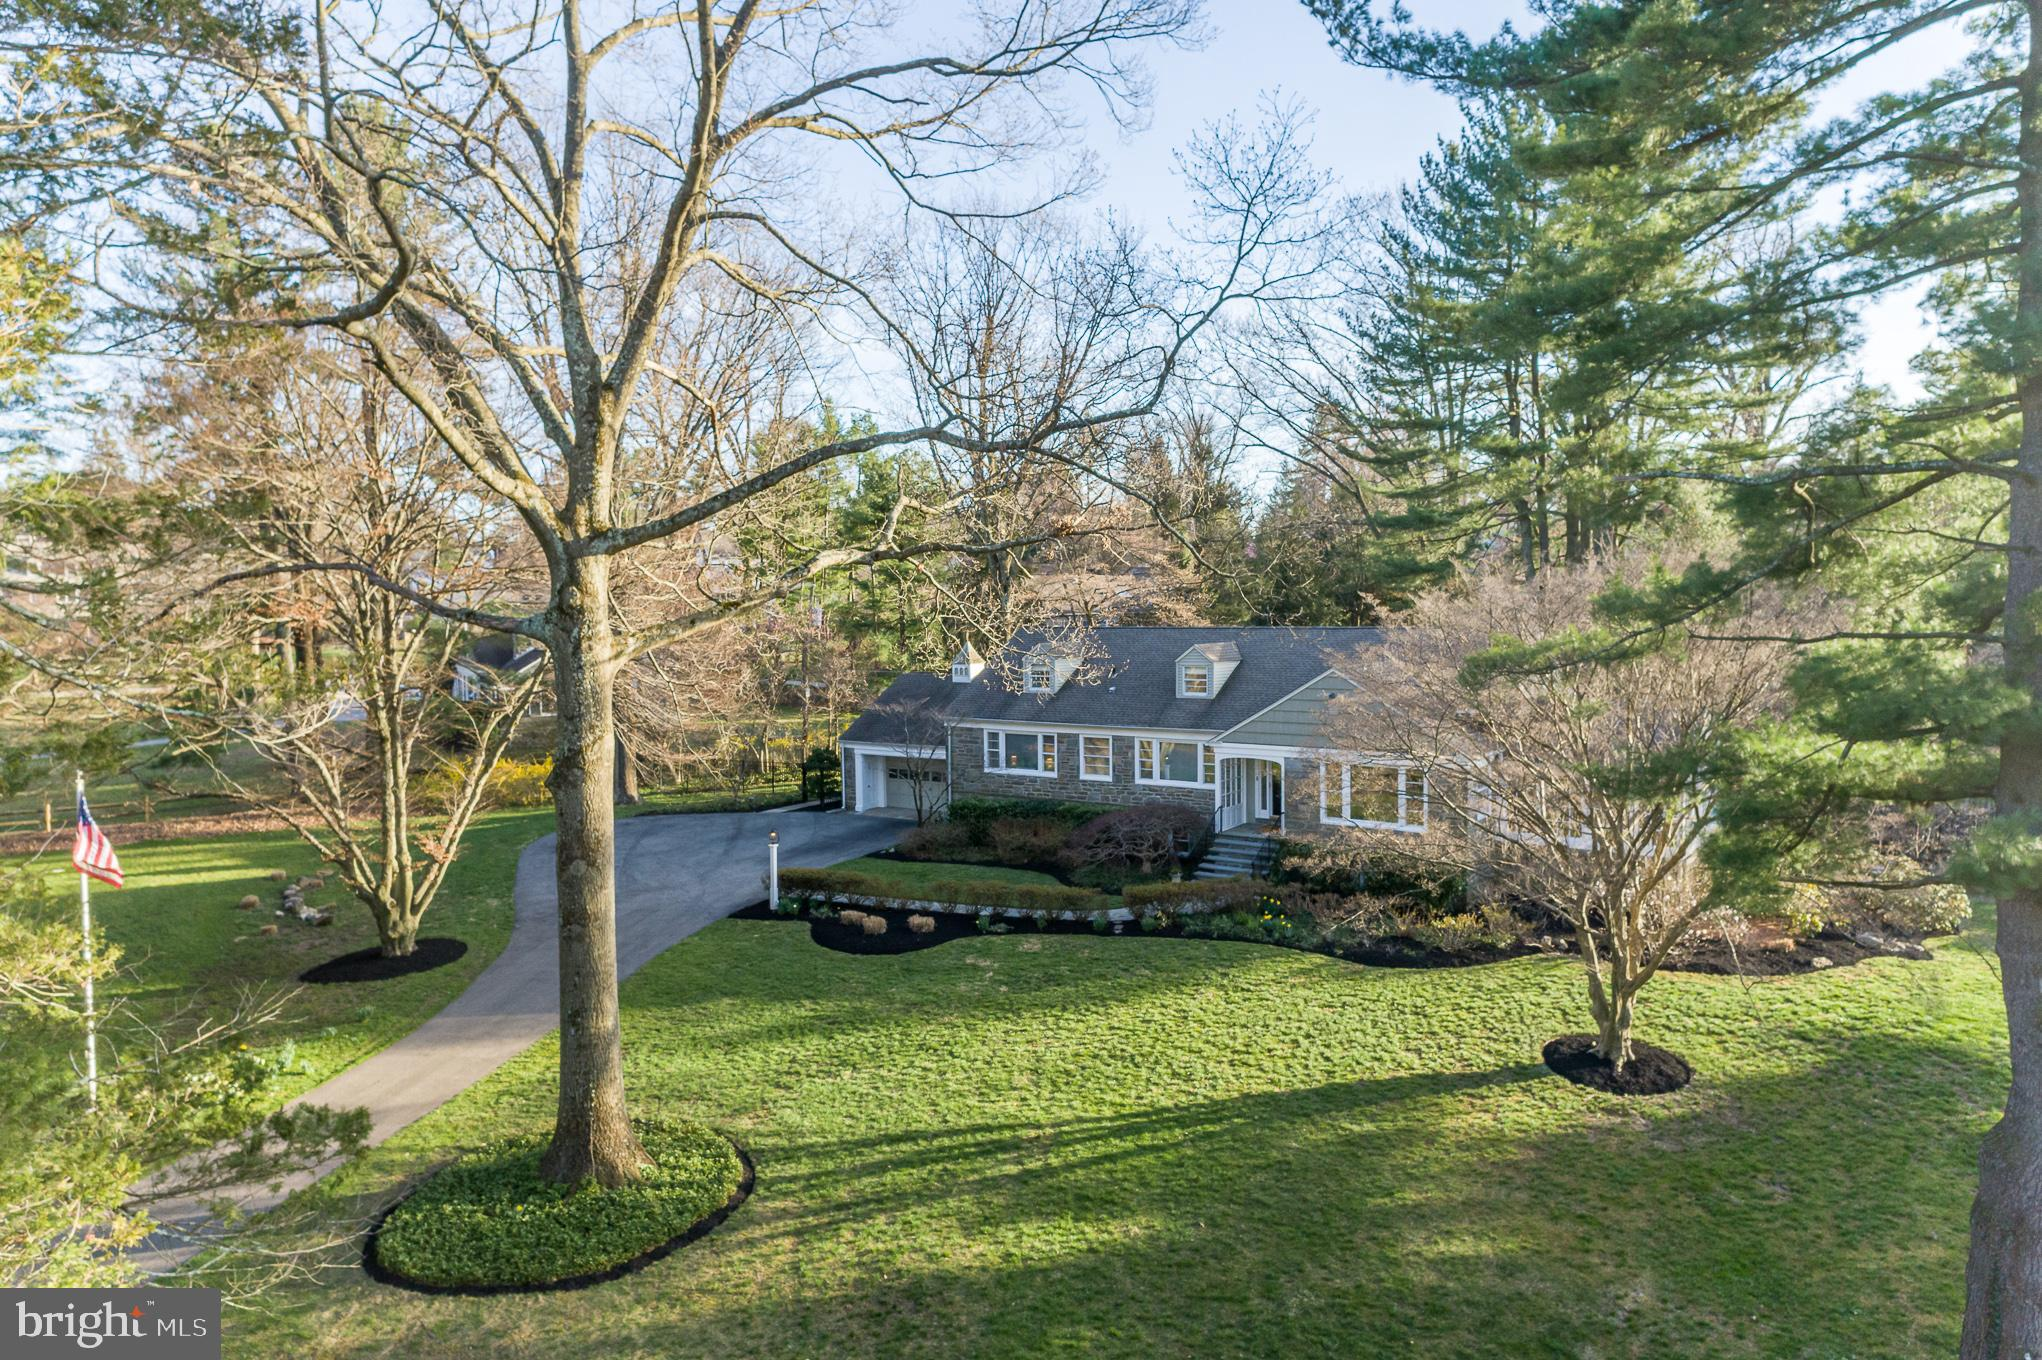 Nestled in the heart of coveted Northside Wynnewood, this picturesque home by Mahoney builders is a stunner!  This 5 bedroom, 3 full/1 half bath stone Cape Cod rests on a .95 acre of sprawling landscaped grounds with spectacular plantings! With over 4,000 square feet, 316 McClenaghan Mill Road boasts generous indoor and outdoor living spaces. The extended driveway to the home adds extra flair to its fabulous curb appeal! From the beautifully pointed hardscaped walkway, you will enter 316 McClenaghan Mill and fall in love!   Beautiful refinished oak hardwood floors run throughout the first floor from the center hall to the large formal living room. Equipped with a gorgeous wood burning fireplace and the finest moldings, the living room flows directly into the formal sunlit dining room. Additionally, directly off the living room is a seasonal light filled porch with full glass windows that can be replaced with screens during the warmer months.   The back of the home meets the needs of everyday living and is a true haven for entertaining! The space includes a large, eat in kitchen with two toned custom cabinetry, a cherry island with a butcher block top, neutral granite countertops, tile backsplash, a butlers pantry with sink, and abundant storage.  Directly off the kitchen is an enormous family room which features custom built-in cabinetry, a beautifully pointed stone wood burning fireplace, custom Anderson windows and doors, vaulted ceilings and skylights. Open the double doors directly out to the tiered deck and there lies your very own private backyard oasis completely fenced in – absolutely perfect for summer nights!   The main floor also has a large serene first floor master, with great closet space. The ensuite master bath includes an oversized shower with a custom glass door, a porcelain tile floor that extends to the shower walls, and a white wood double vanity with Carrara marble countertops! There are two additional bedrooms and a full hall bath on the first